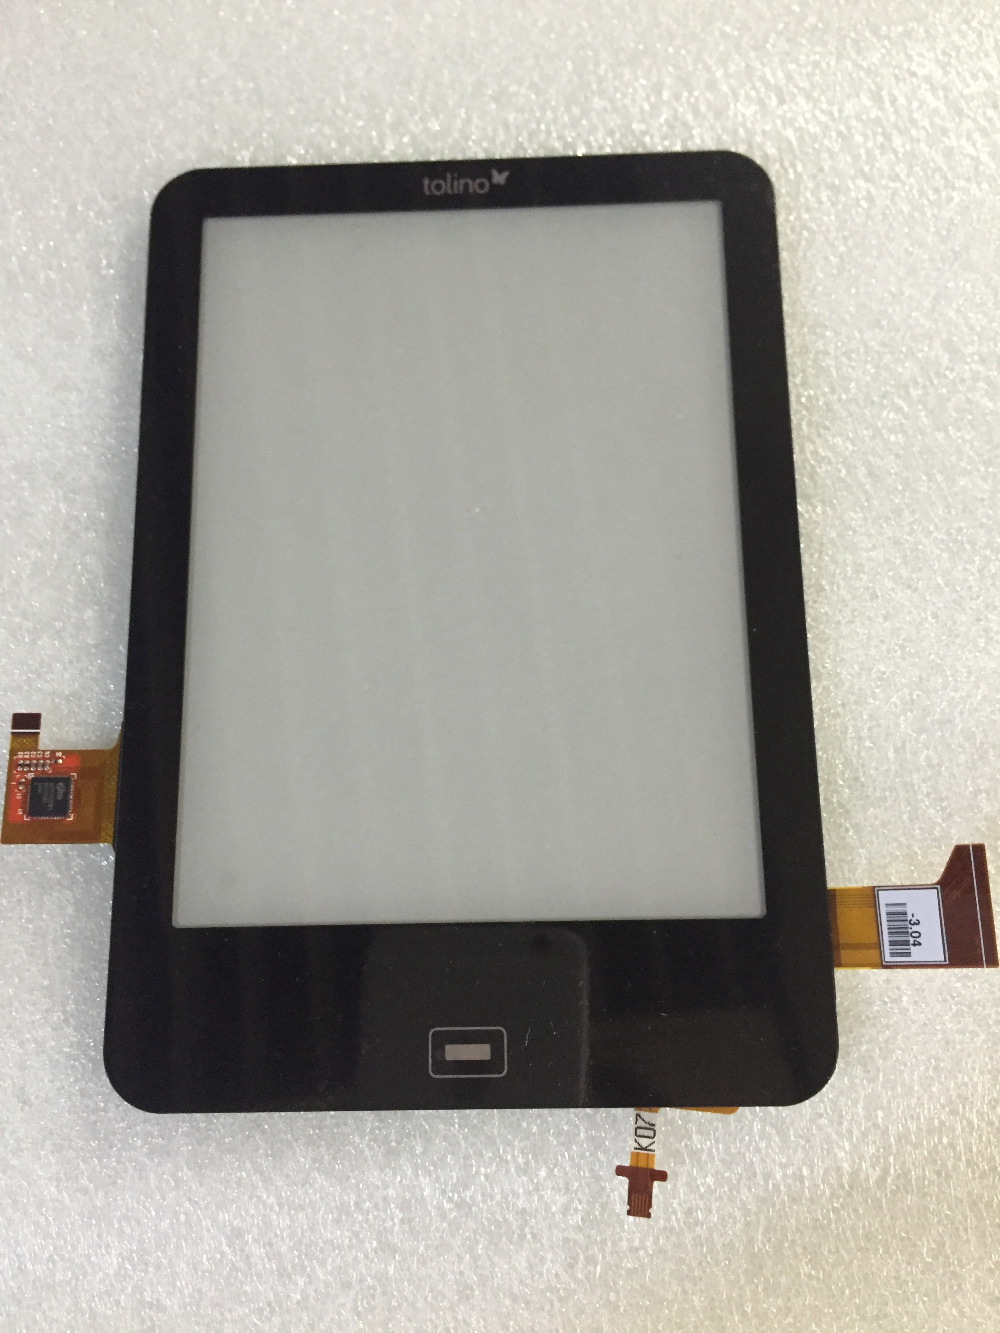 Free shipping 6inch ED060XH5(U1)-S2 For tolino Elink Ebook LCD screen with touch screen digitizer glass Replacement parts zhiyusun new touch screen 364mm 216mm 15 6inch glass 364 216 for table and computer commercial use